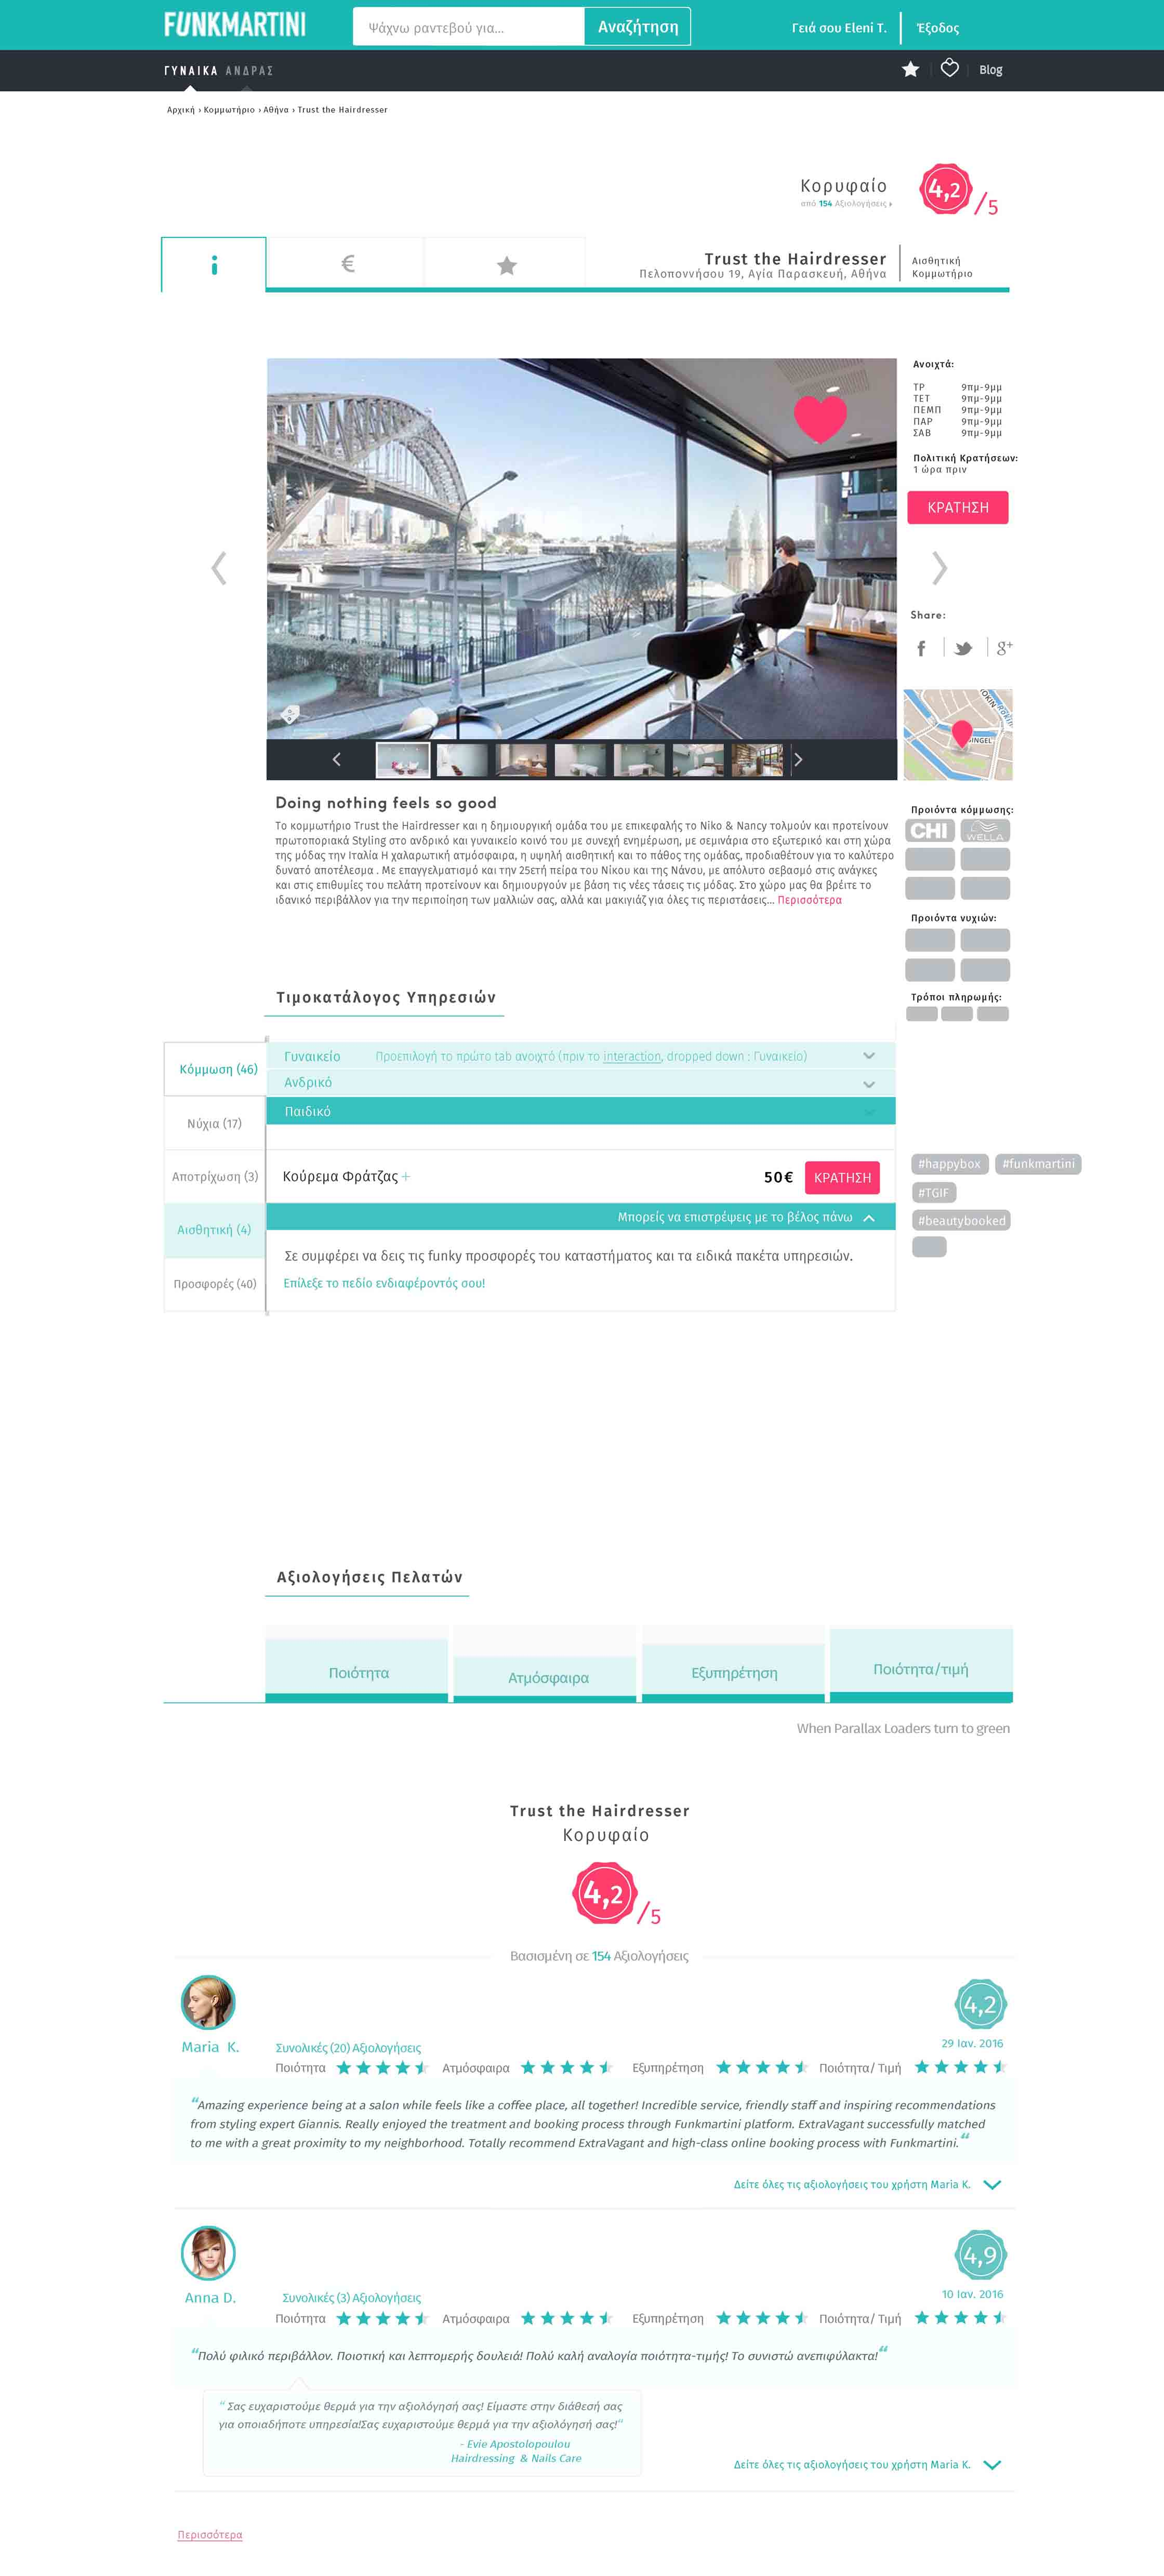 Synkt_Subcategories Salon Profile_Search Results Funkmartini_Top Page_Ite 3